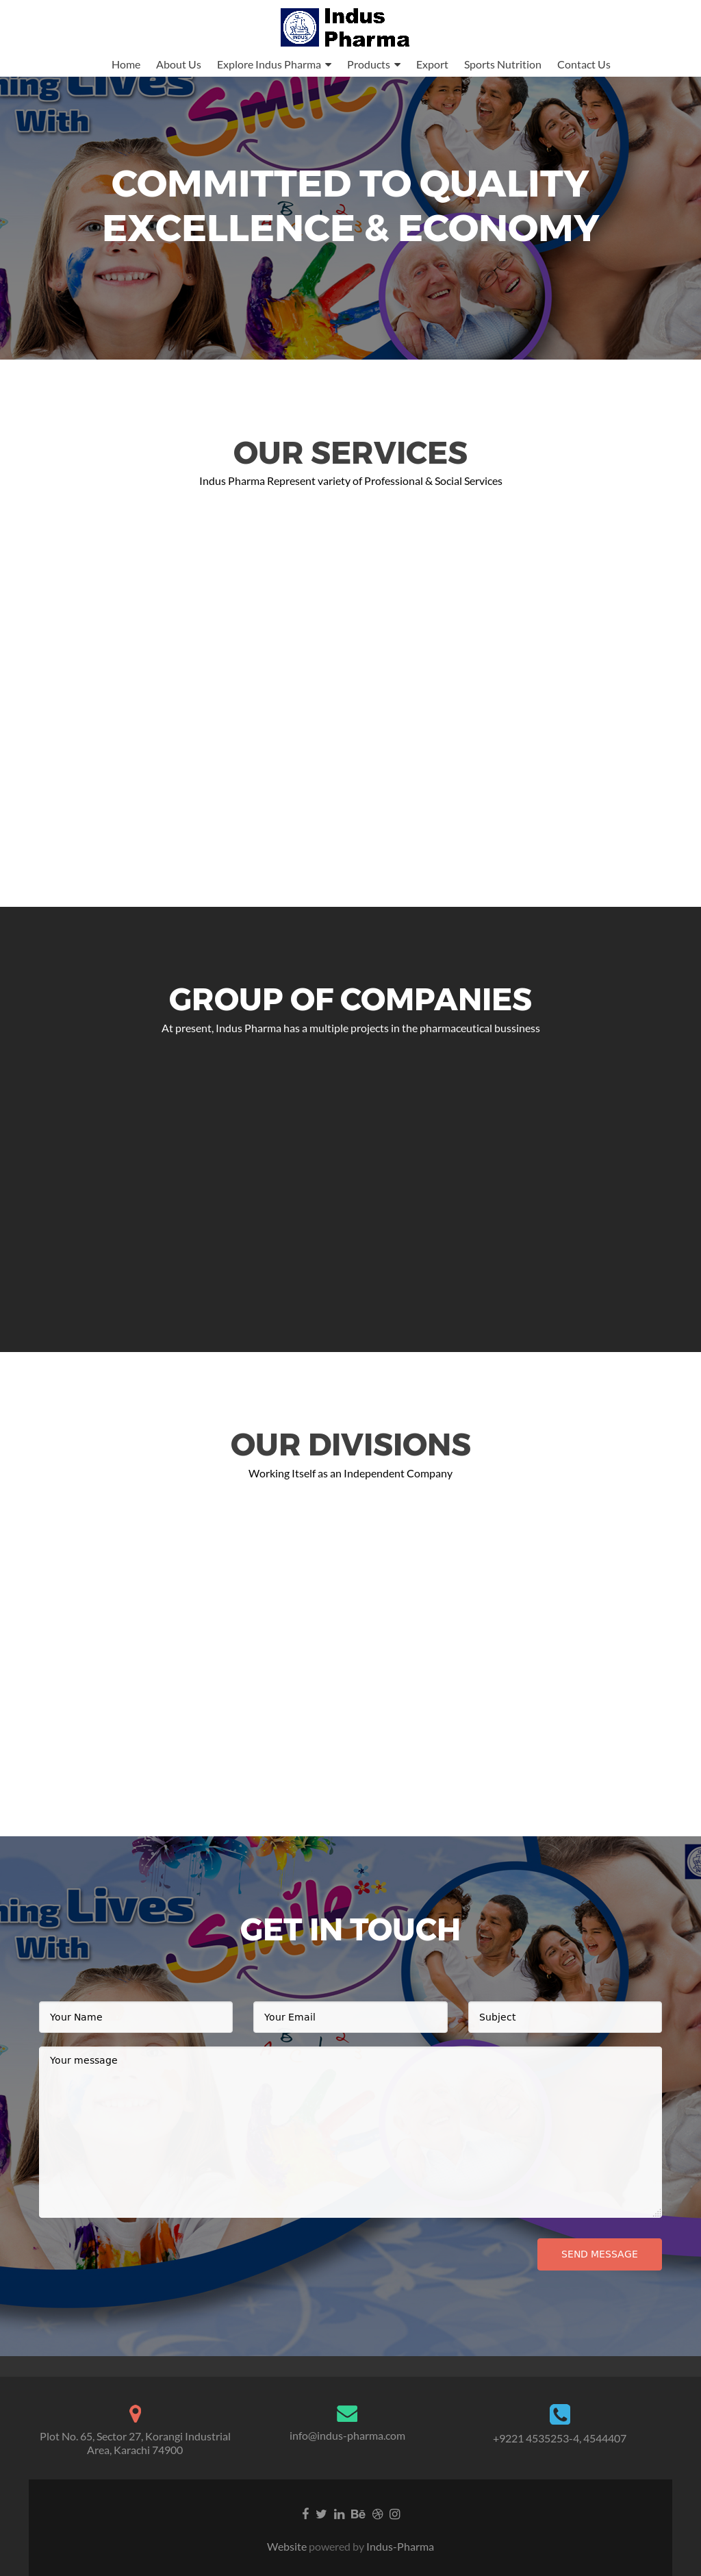 Indus Pharma Competitors, Revenue and Employees - Owler Company Profile